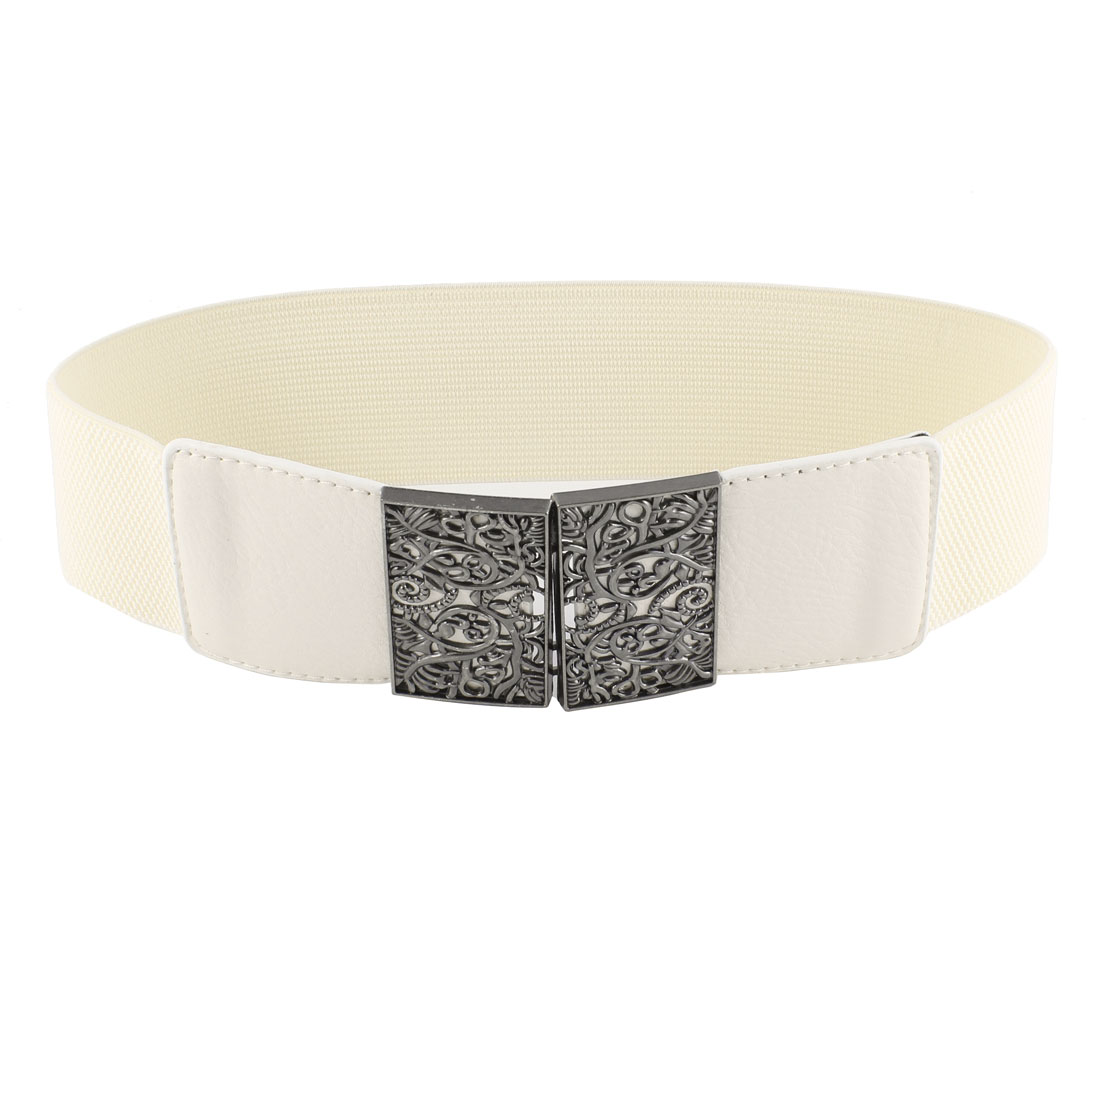 Off White Metal Flower Adorning Rectangle Textured Elastic Cinch Belt for Ladies